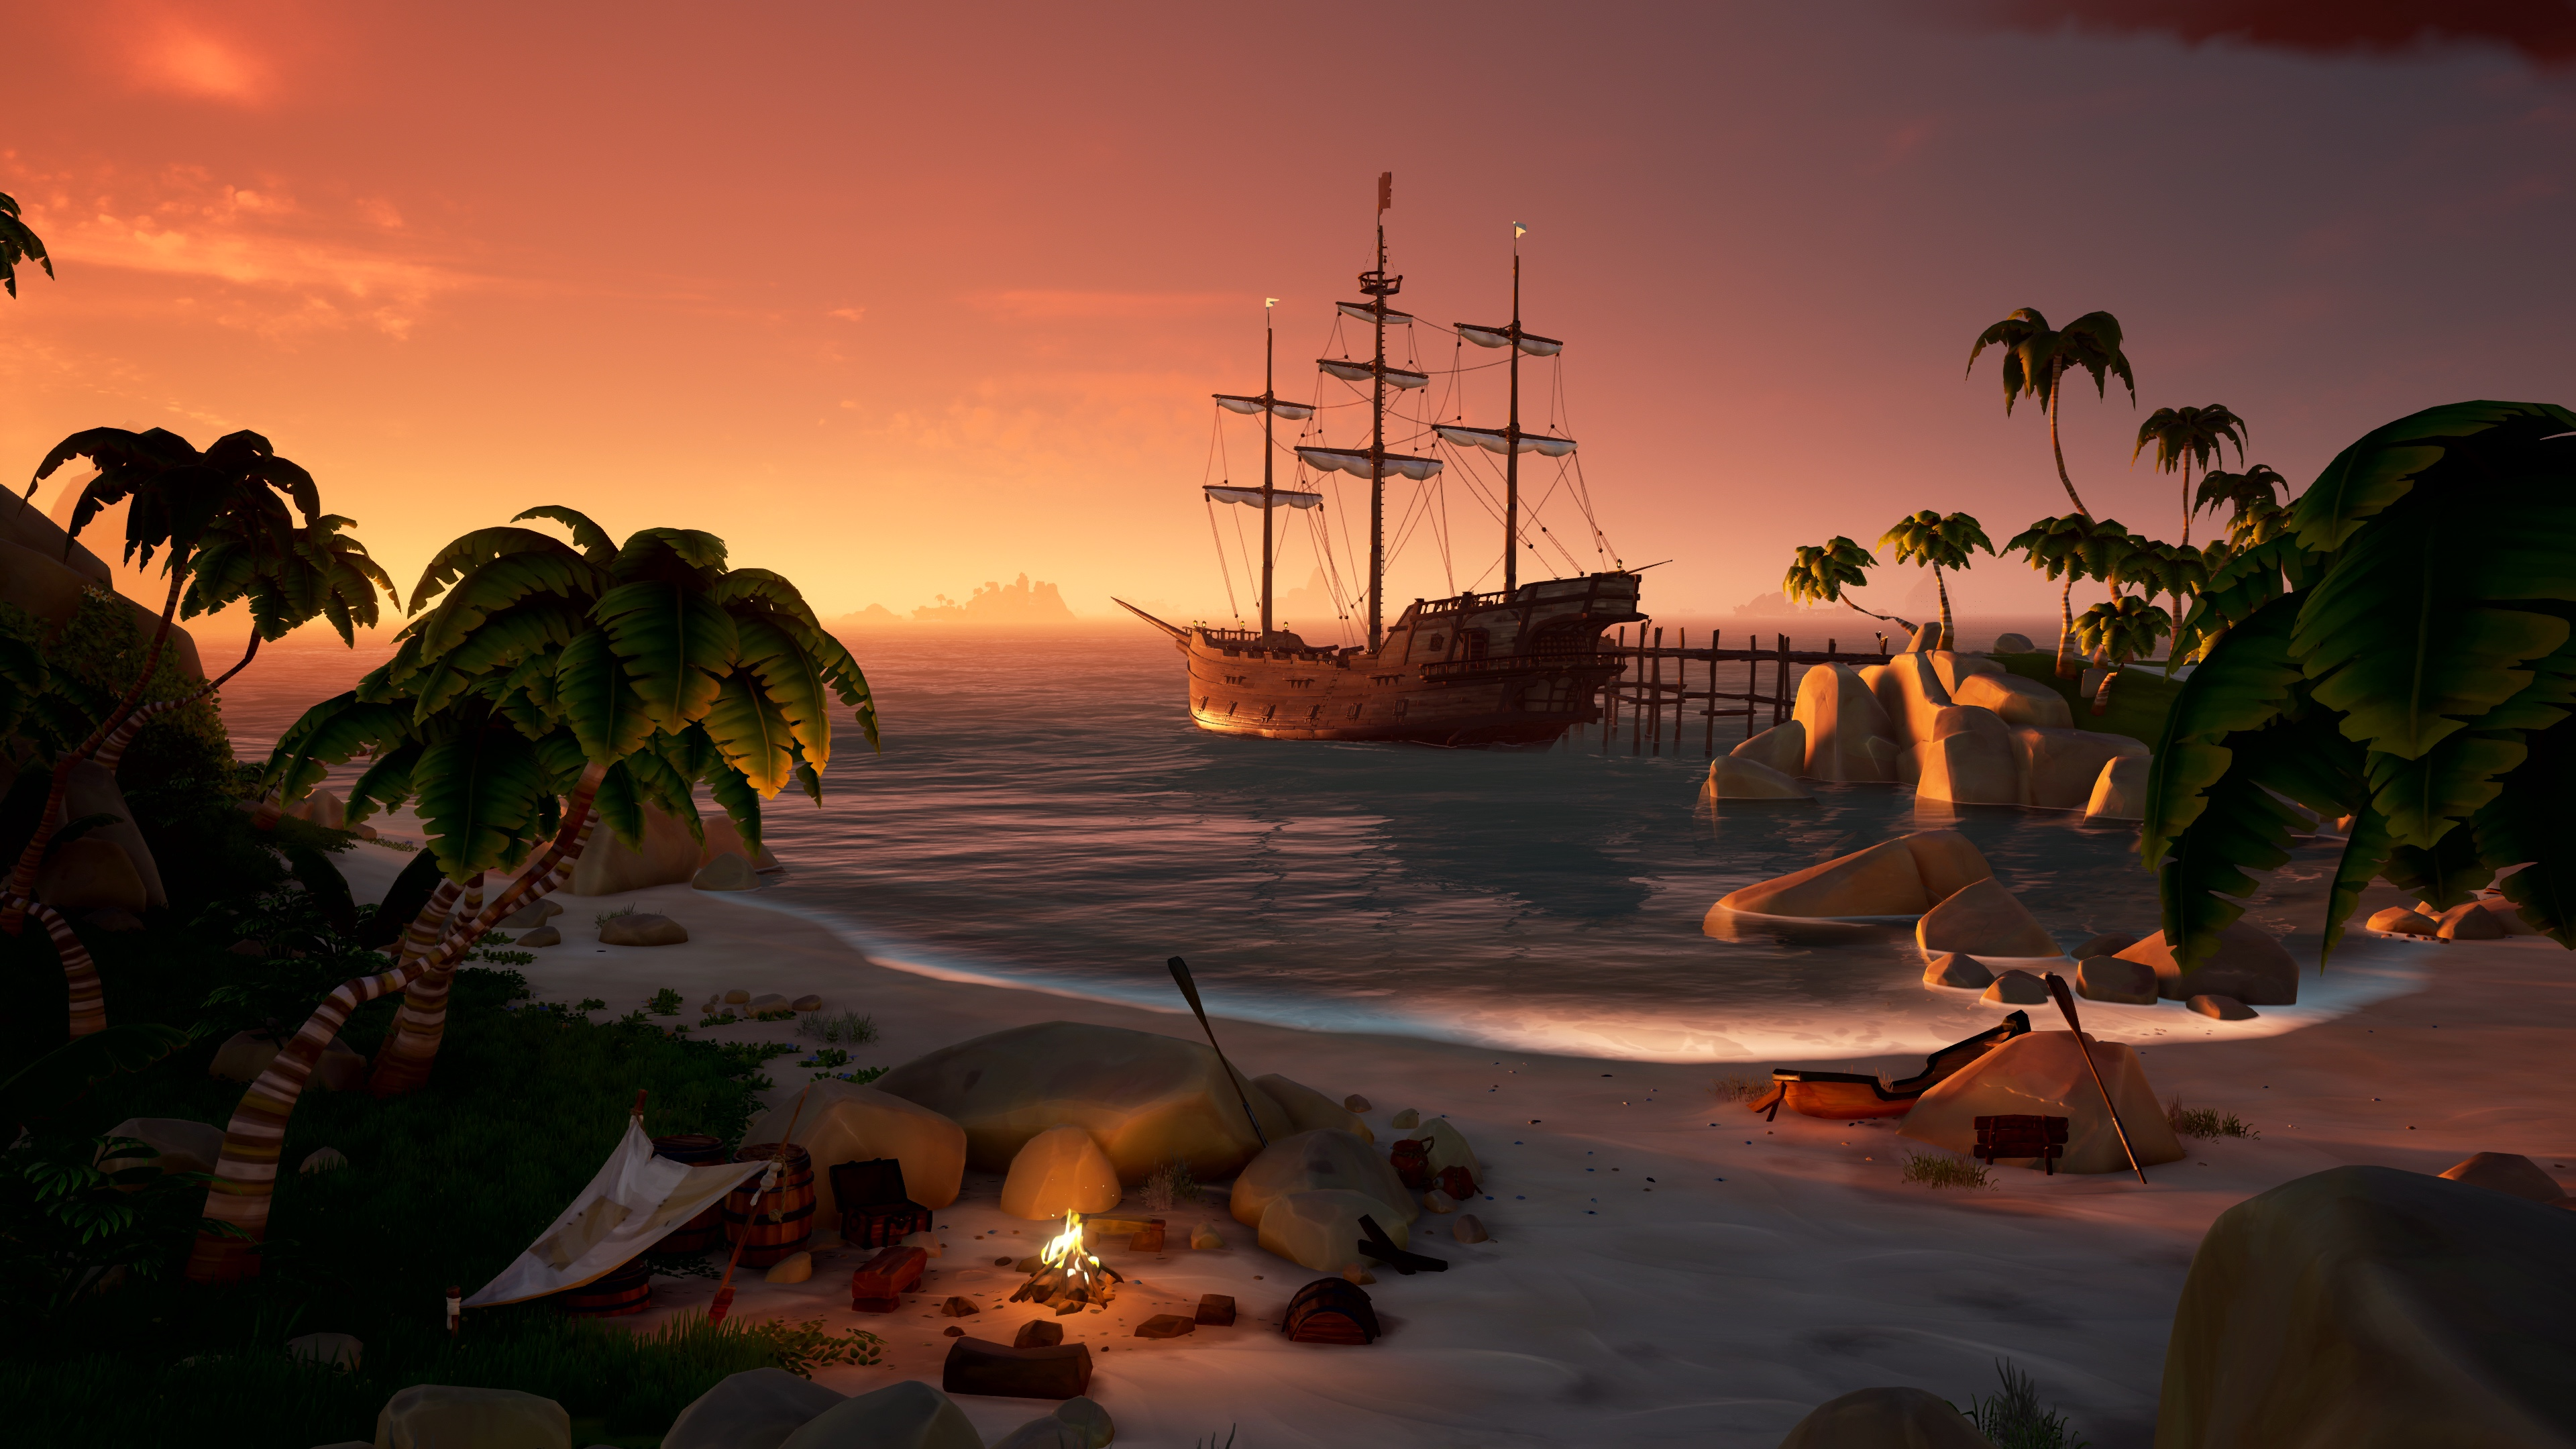 Sea of thieves island scene 4k.0